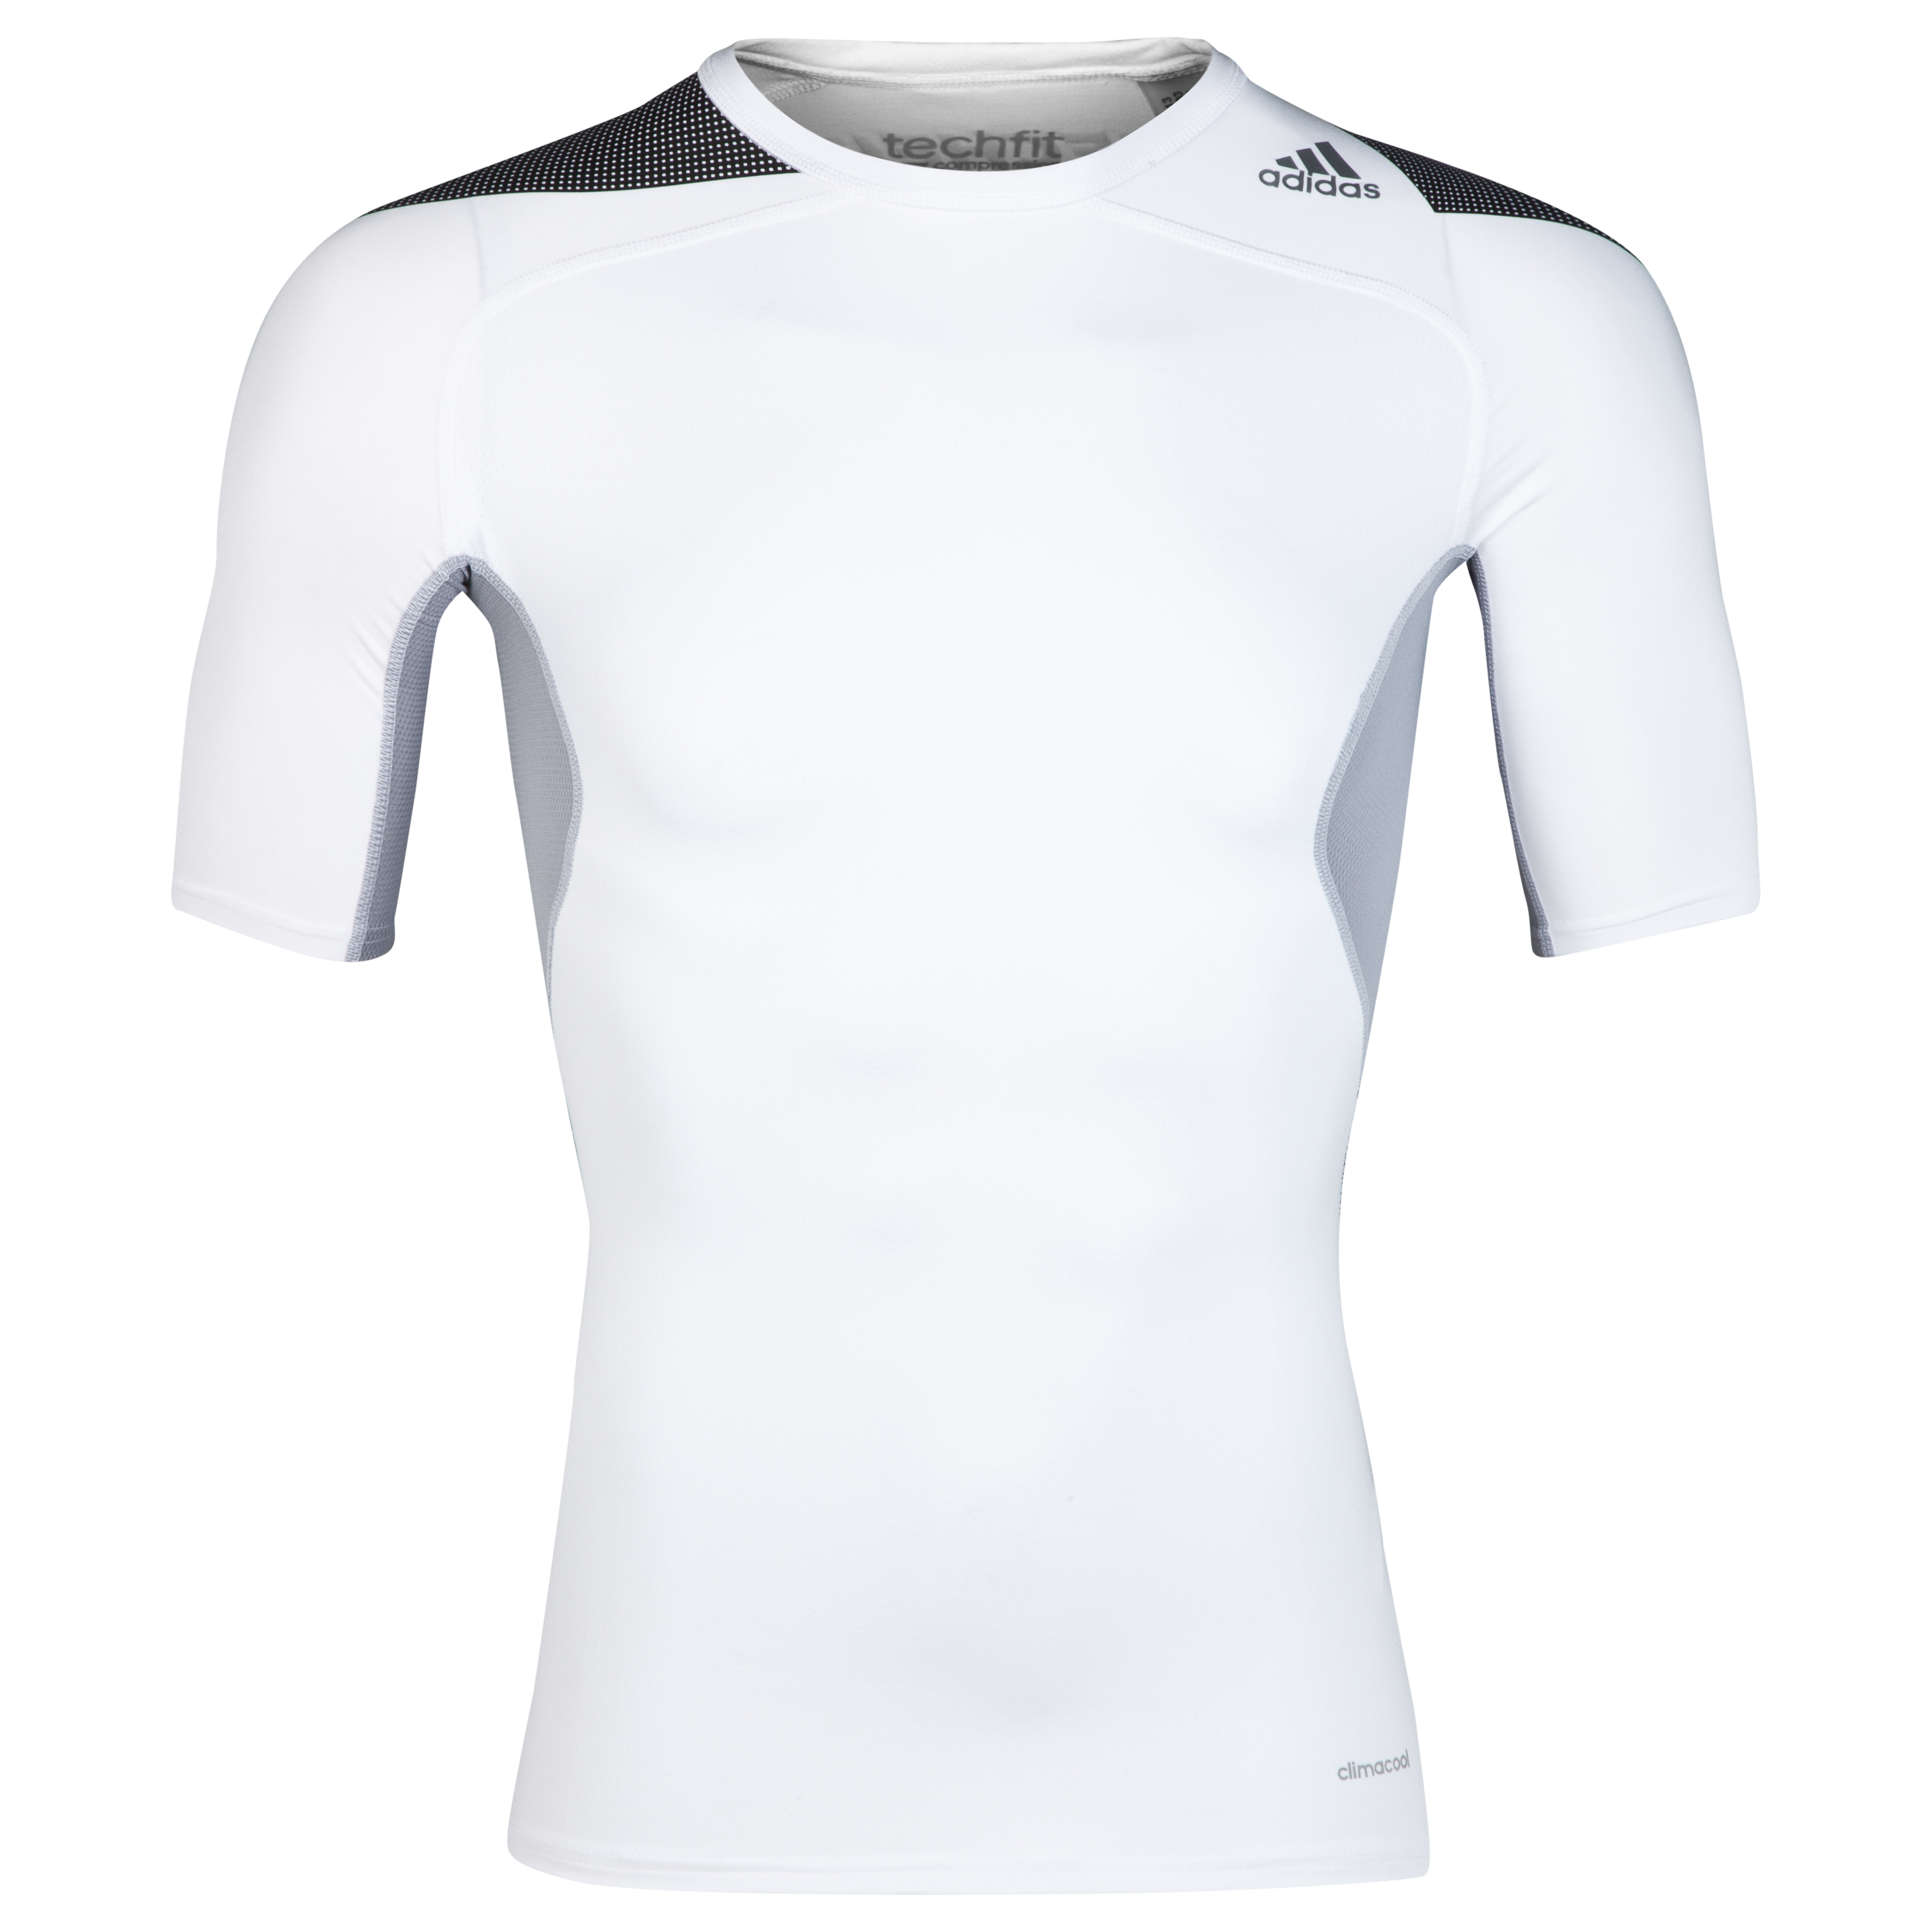 Adidas TechFit Cool Base Layer Top White